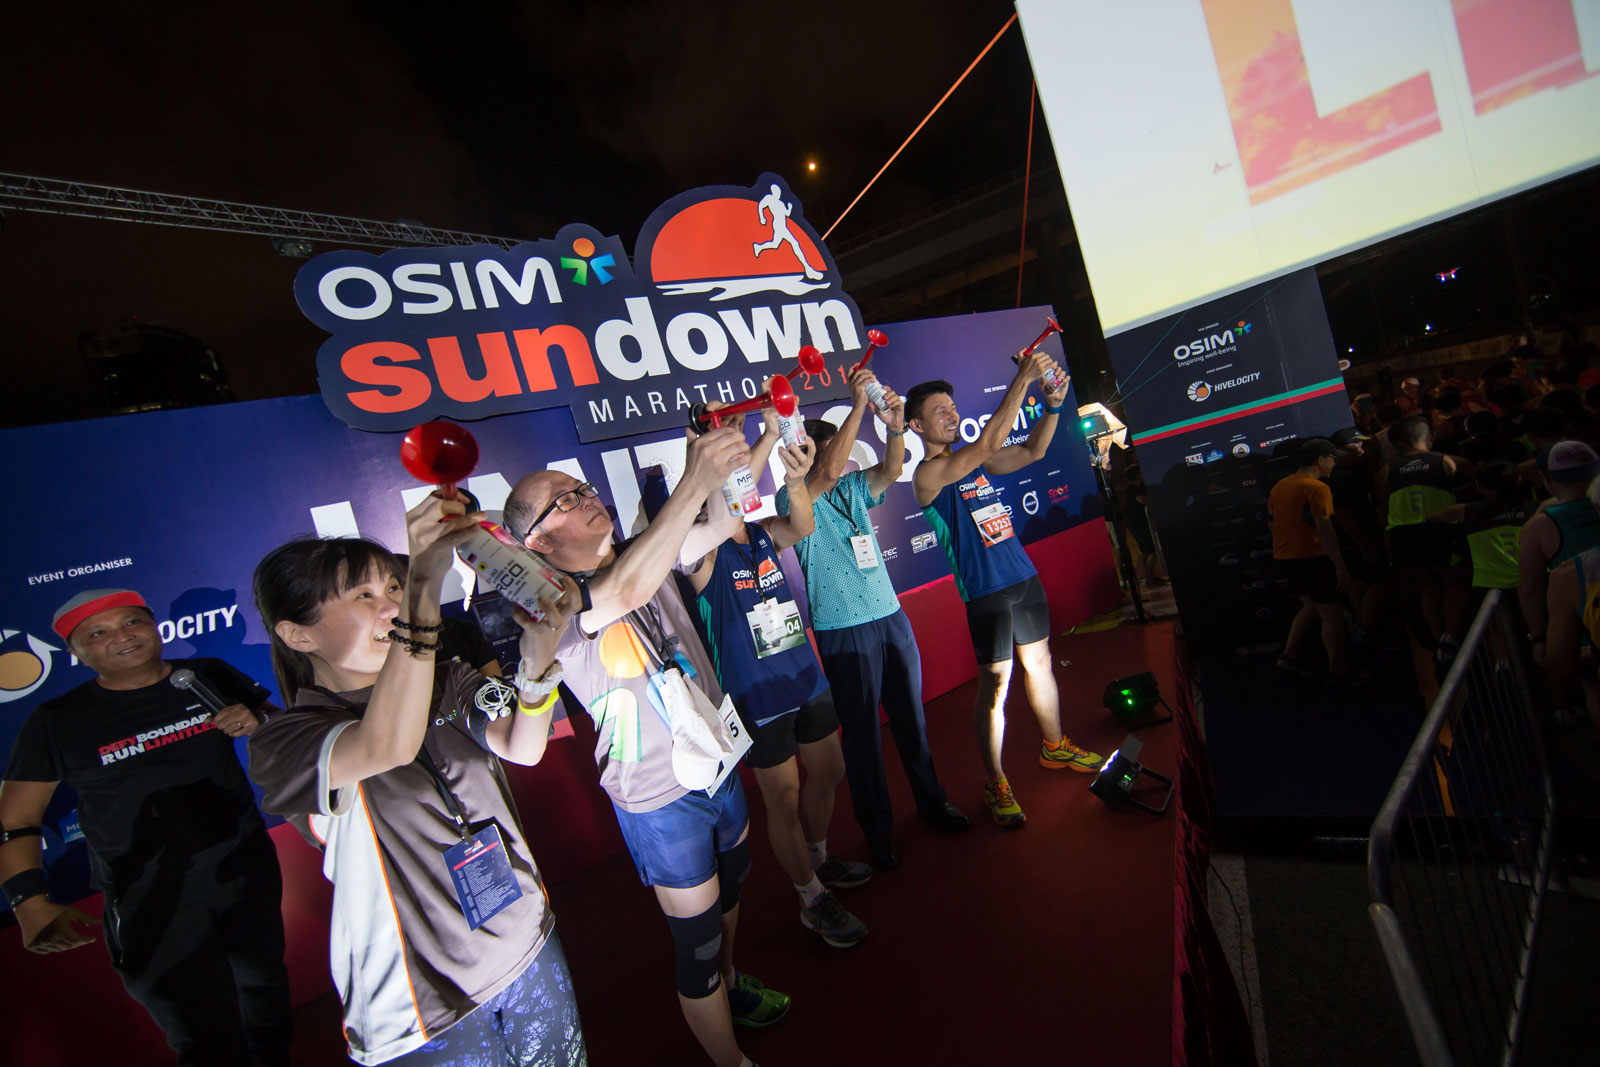 Minister Baey Yam Keng (extreme right) was part of the flag-off contingent for the 10km category at the ninth edition of the OSIM Sundown Marathon at the F1 Pit Building. (Photo Credit: OSIM Sundown Marathon)